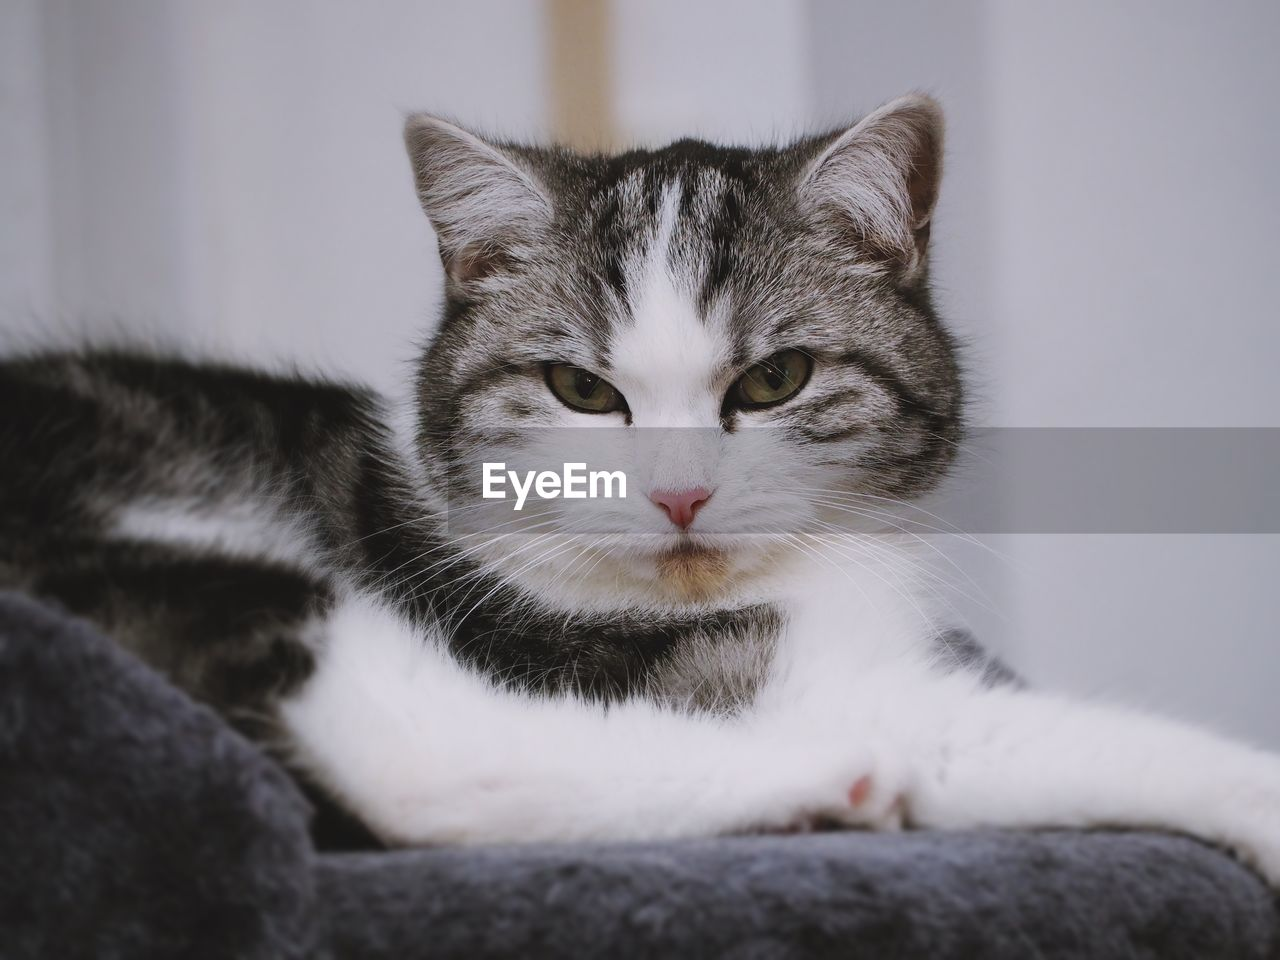 pets, domestic, cat, feline, mammal, domestic cat, domestic animals, one animal, vertebrate, no people, relaxation, portrait, whisker, close-up, looking at camera, indoors, focus on foreground, animal eye, tabby, yellow eyes